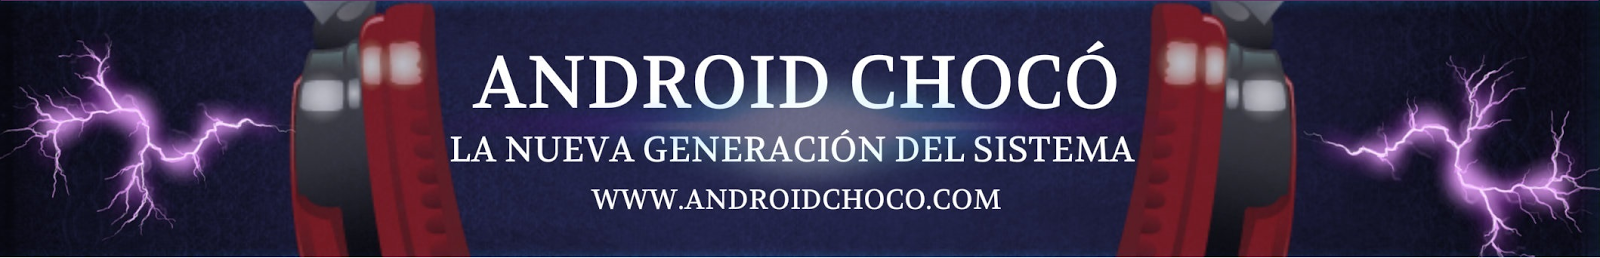 Android Chocó